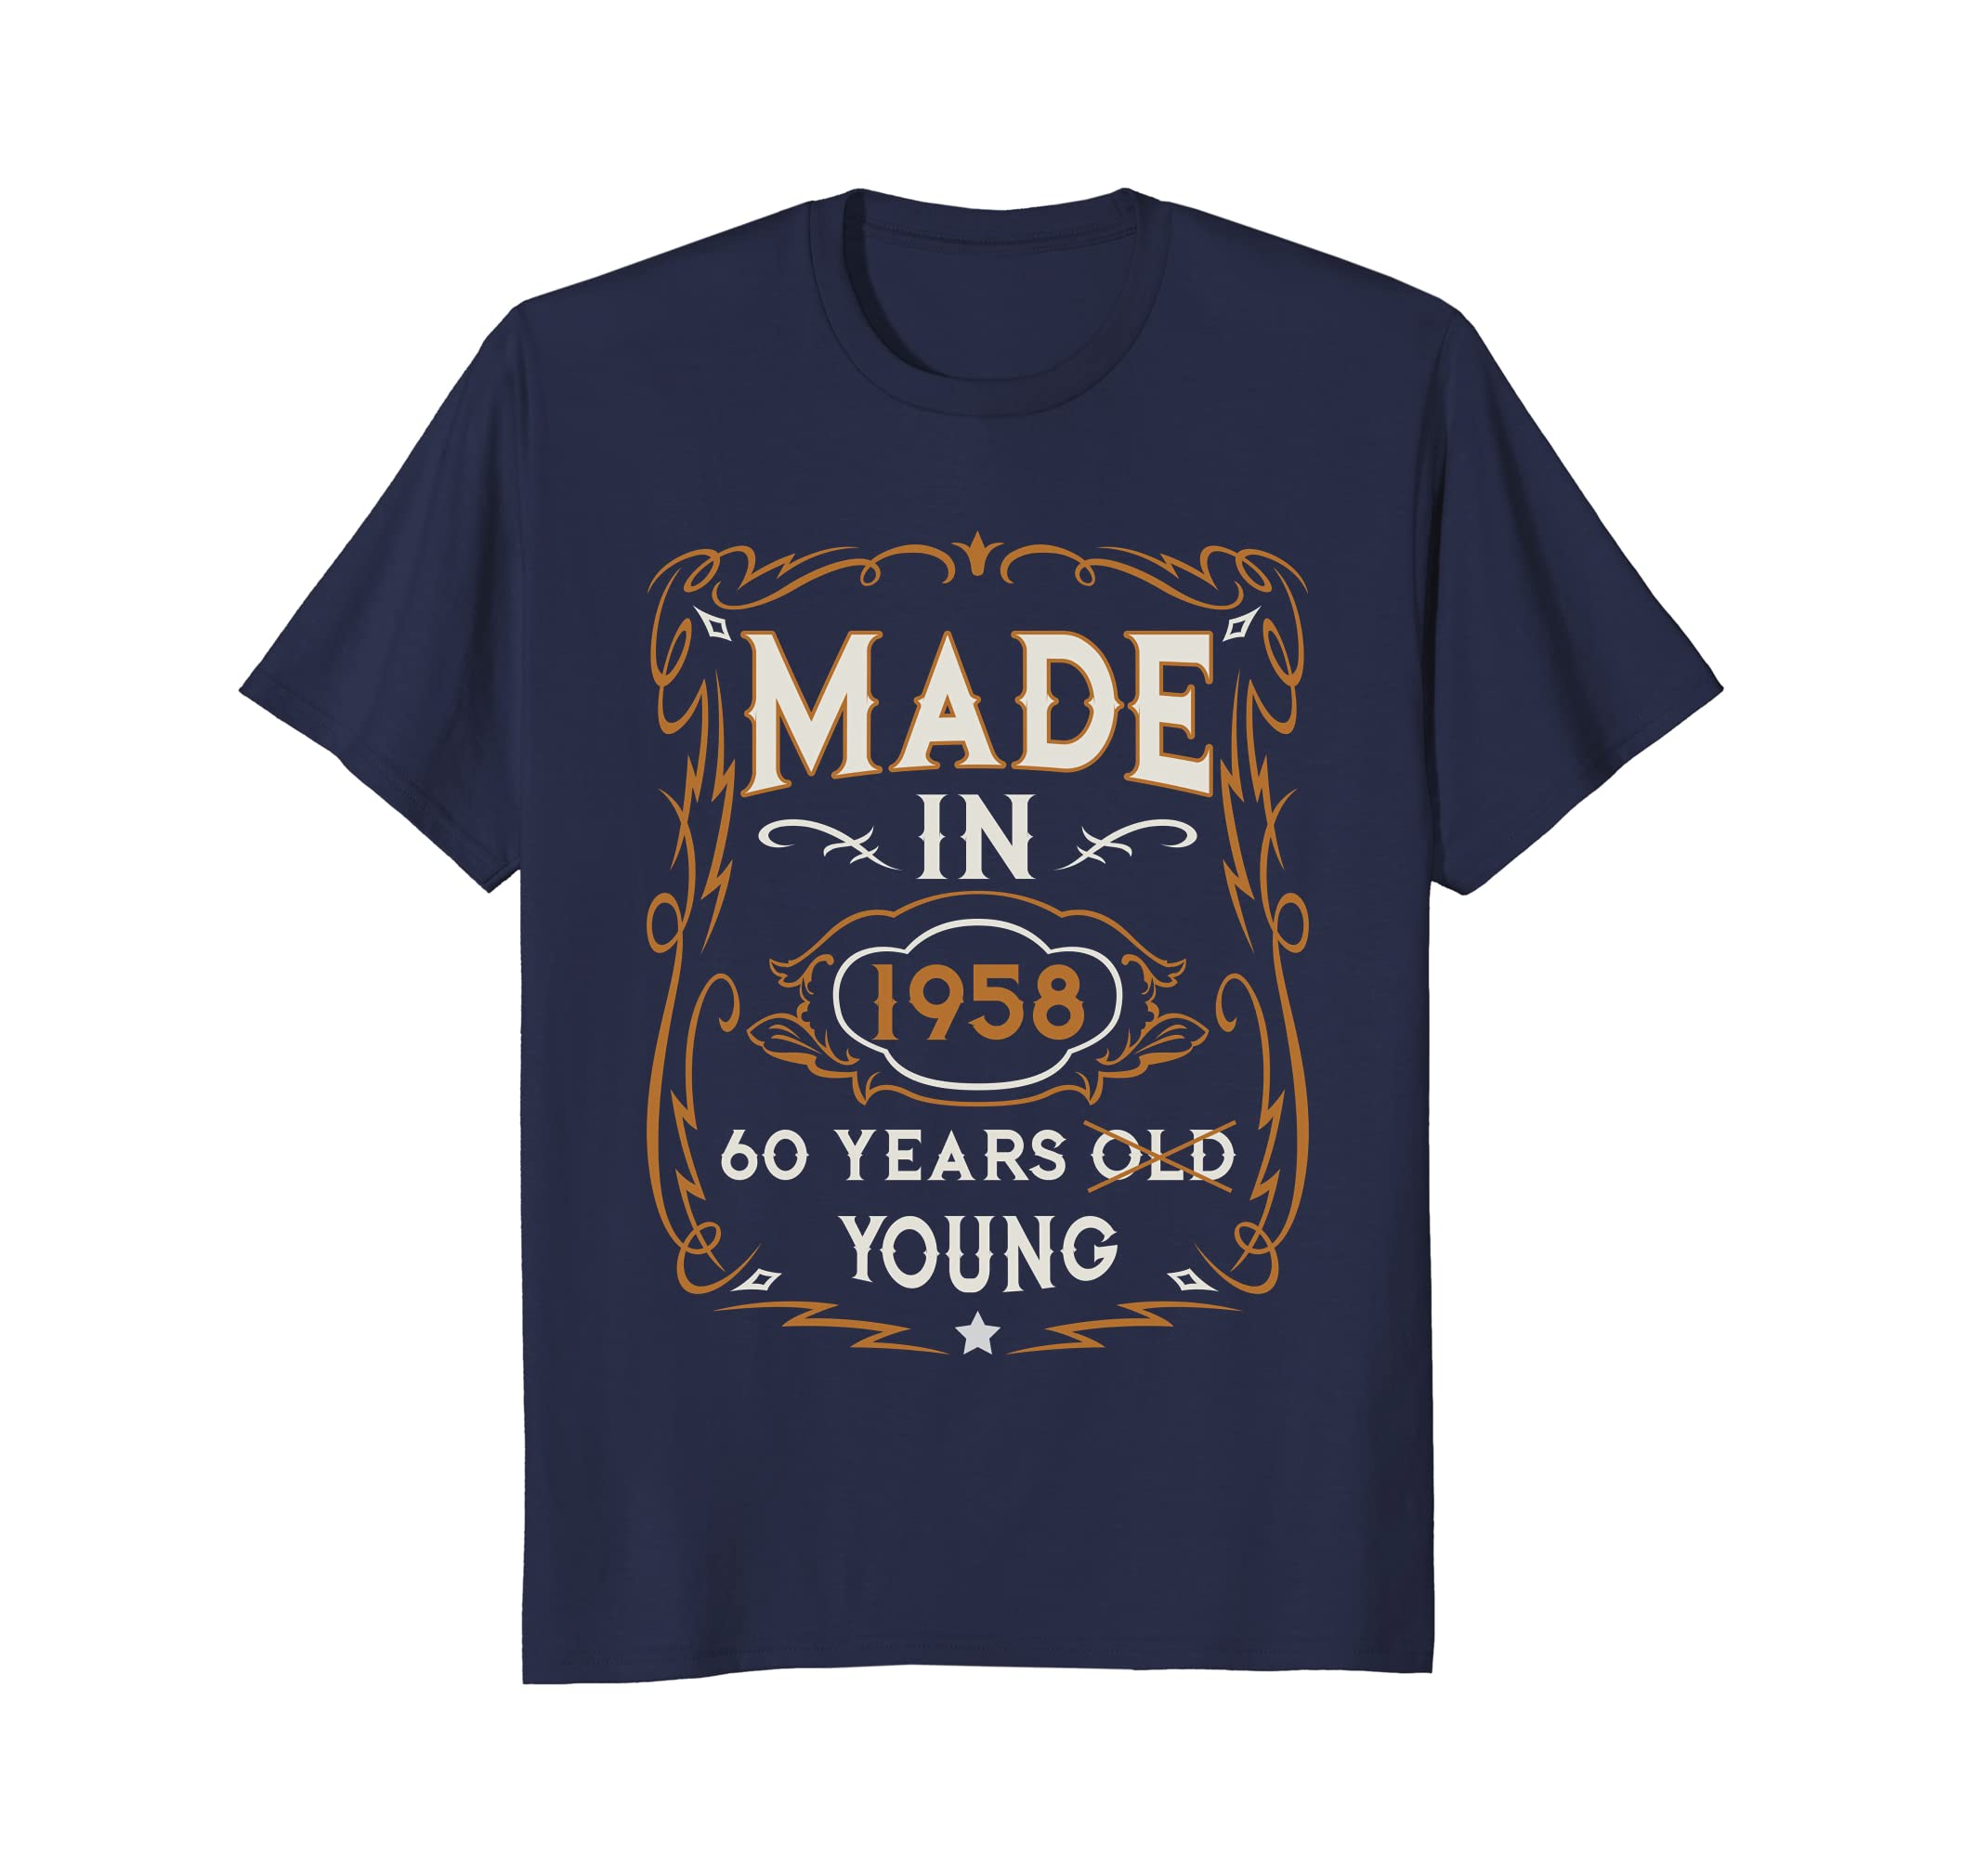 60 Years Young 60th Birthday T-Shirt Gift And Vintage Look-ah my shirt one gift